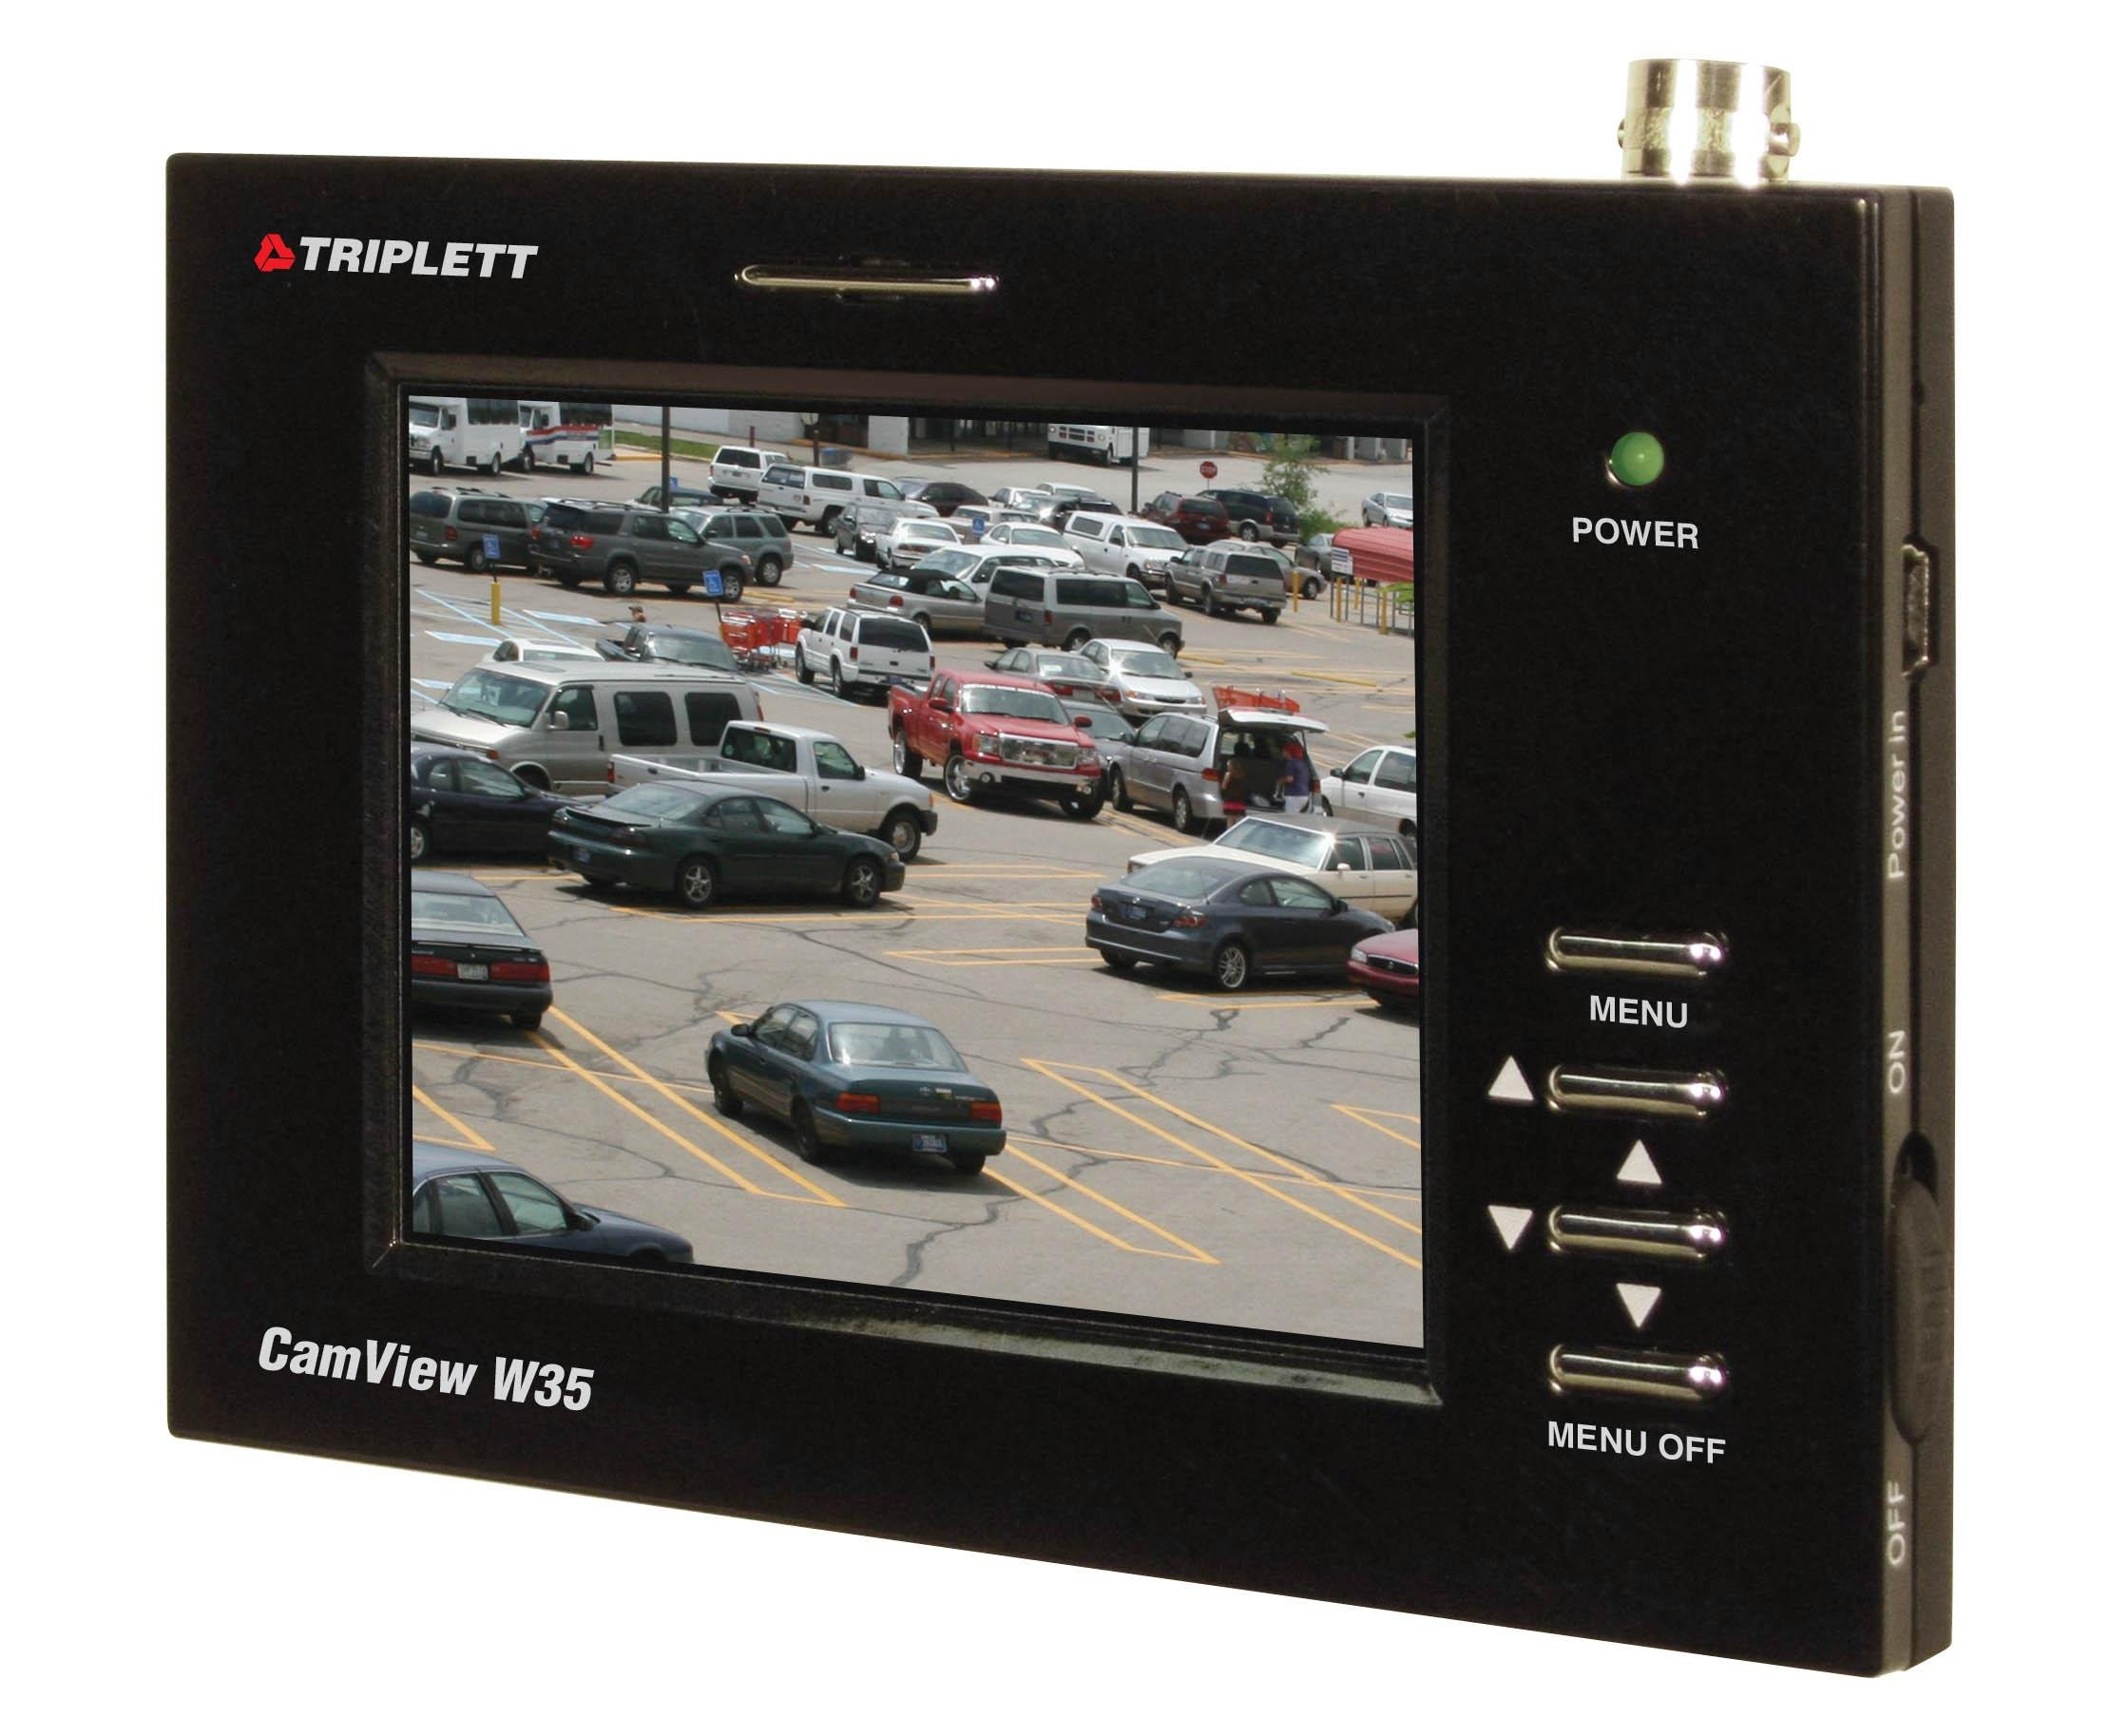 Triplett 8050 CamView W35 Security Camera Wrist Monitor with 3.5-Inch LCD (Black)